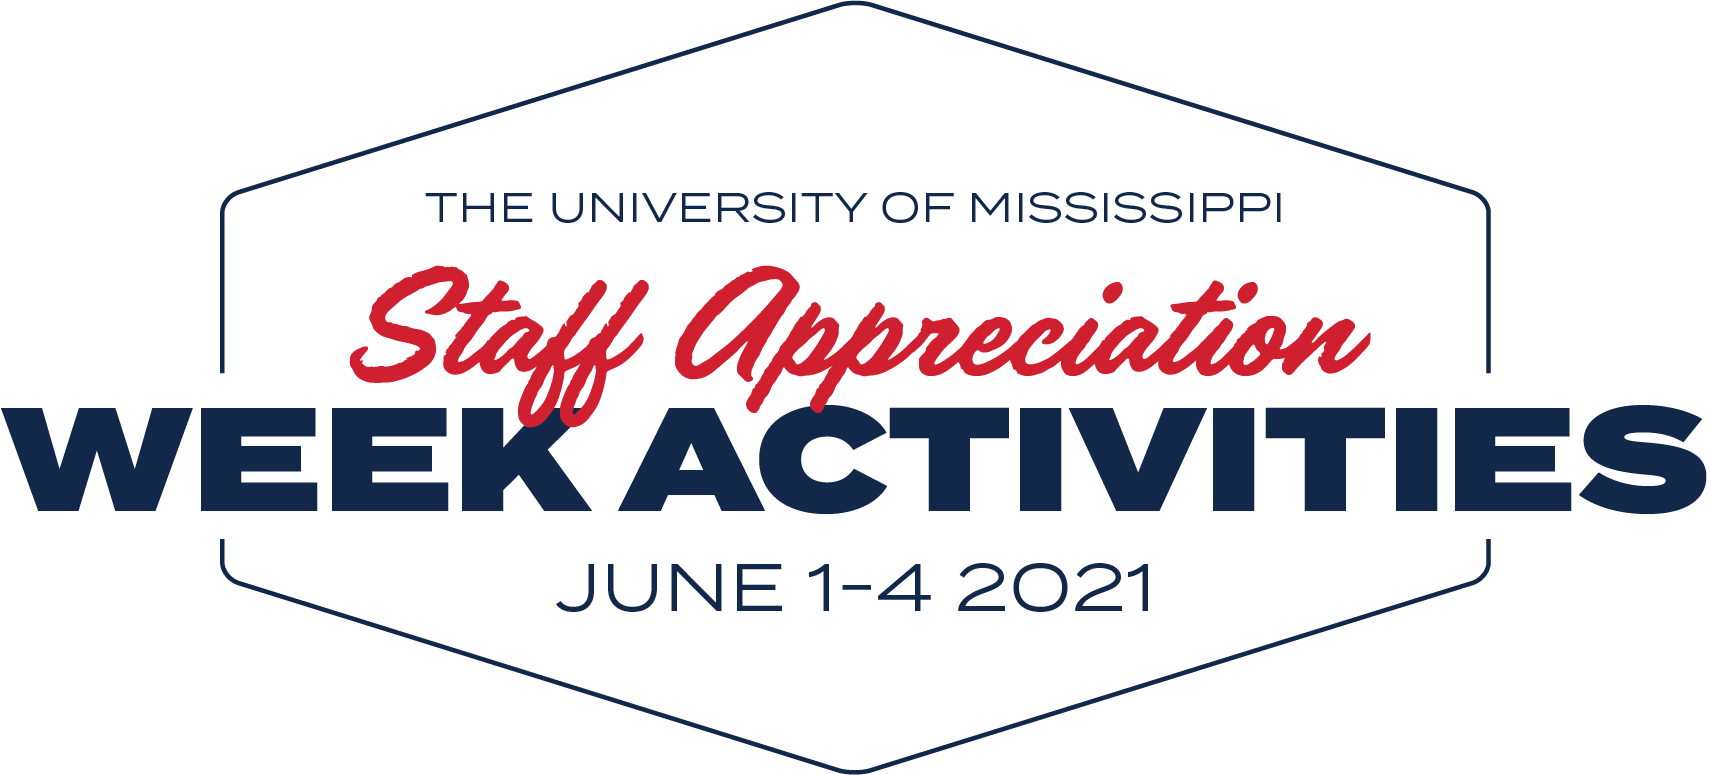 The University of Mississippi Staff Apperciation Week Activities June 1-4